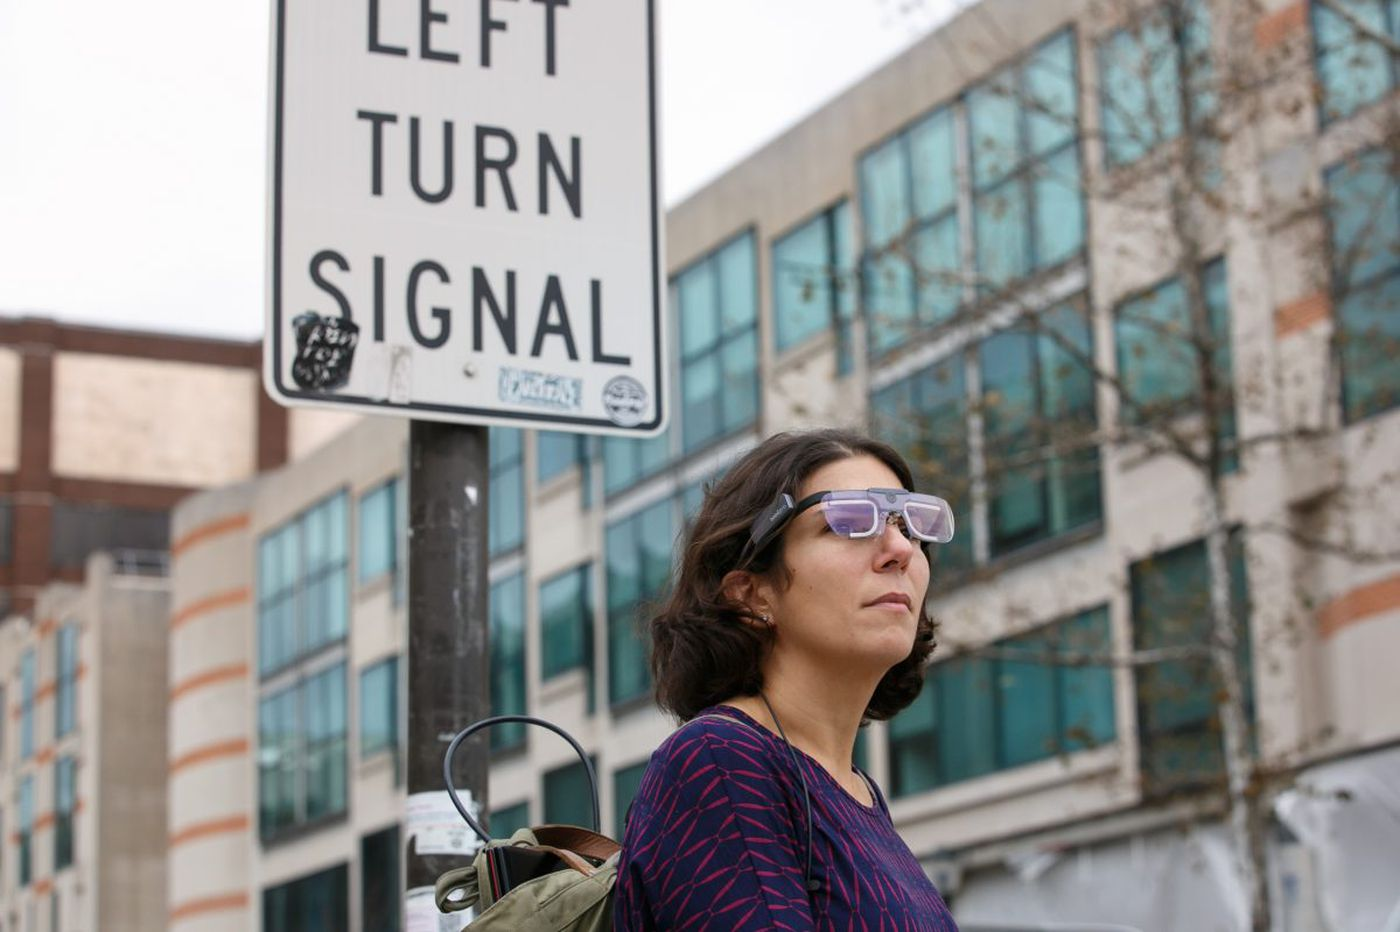 Penn team seeks to make streets safer by keeping an eye on cyclists' eyes